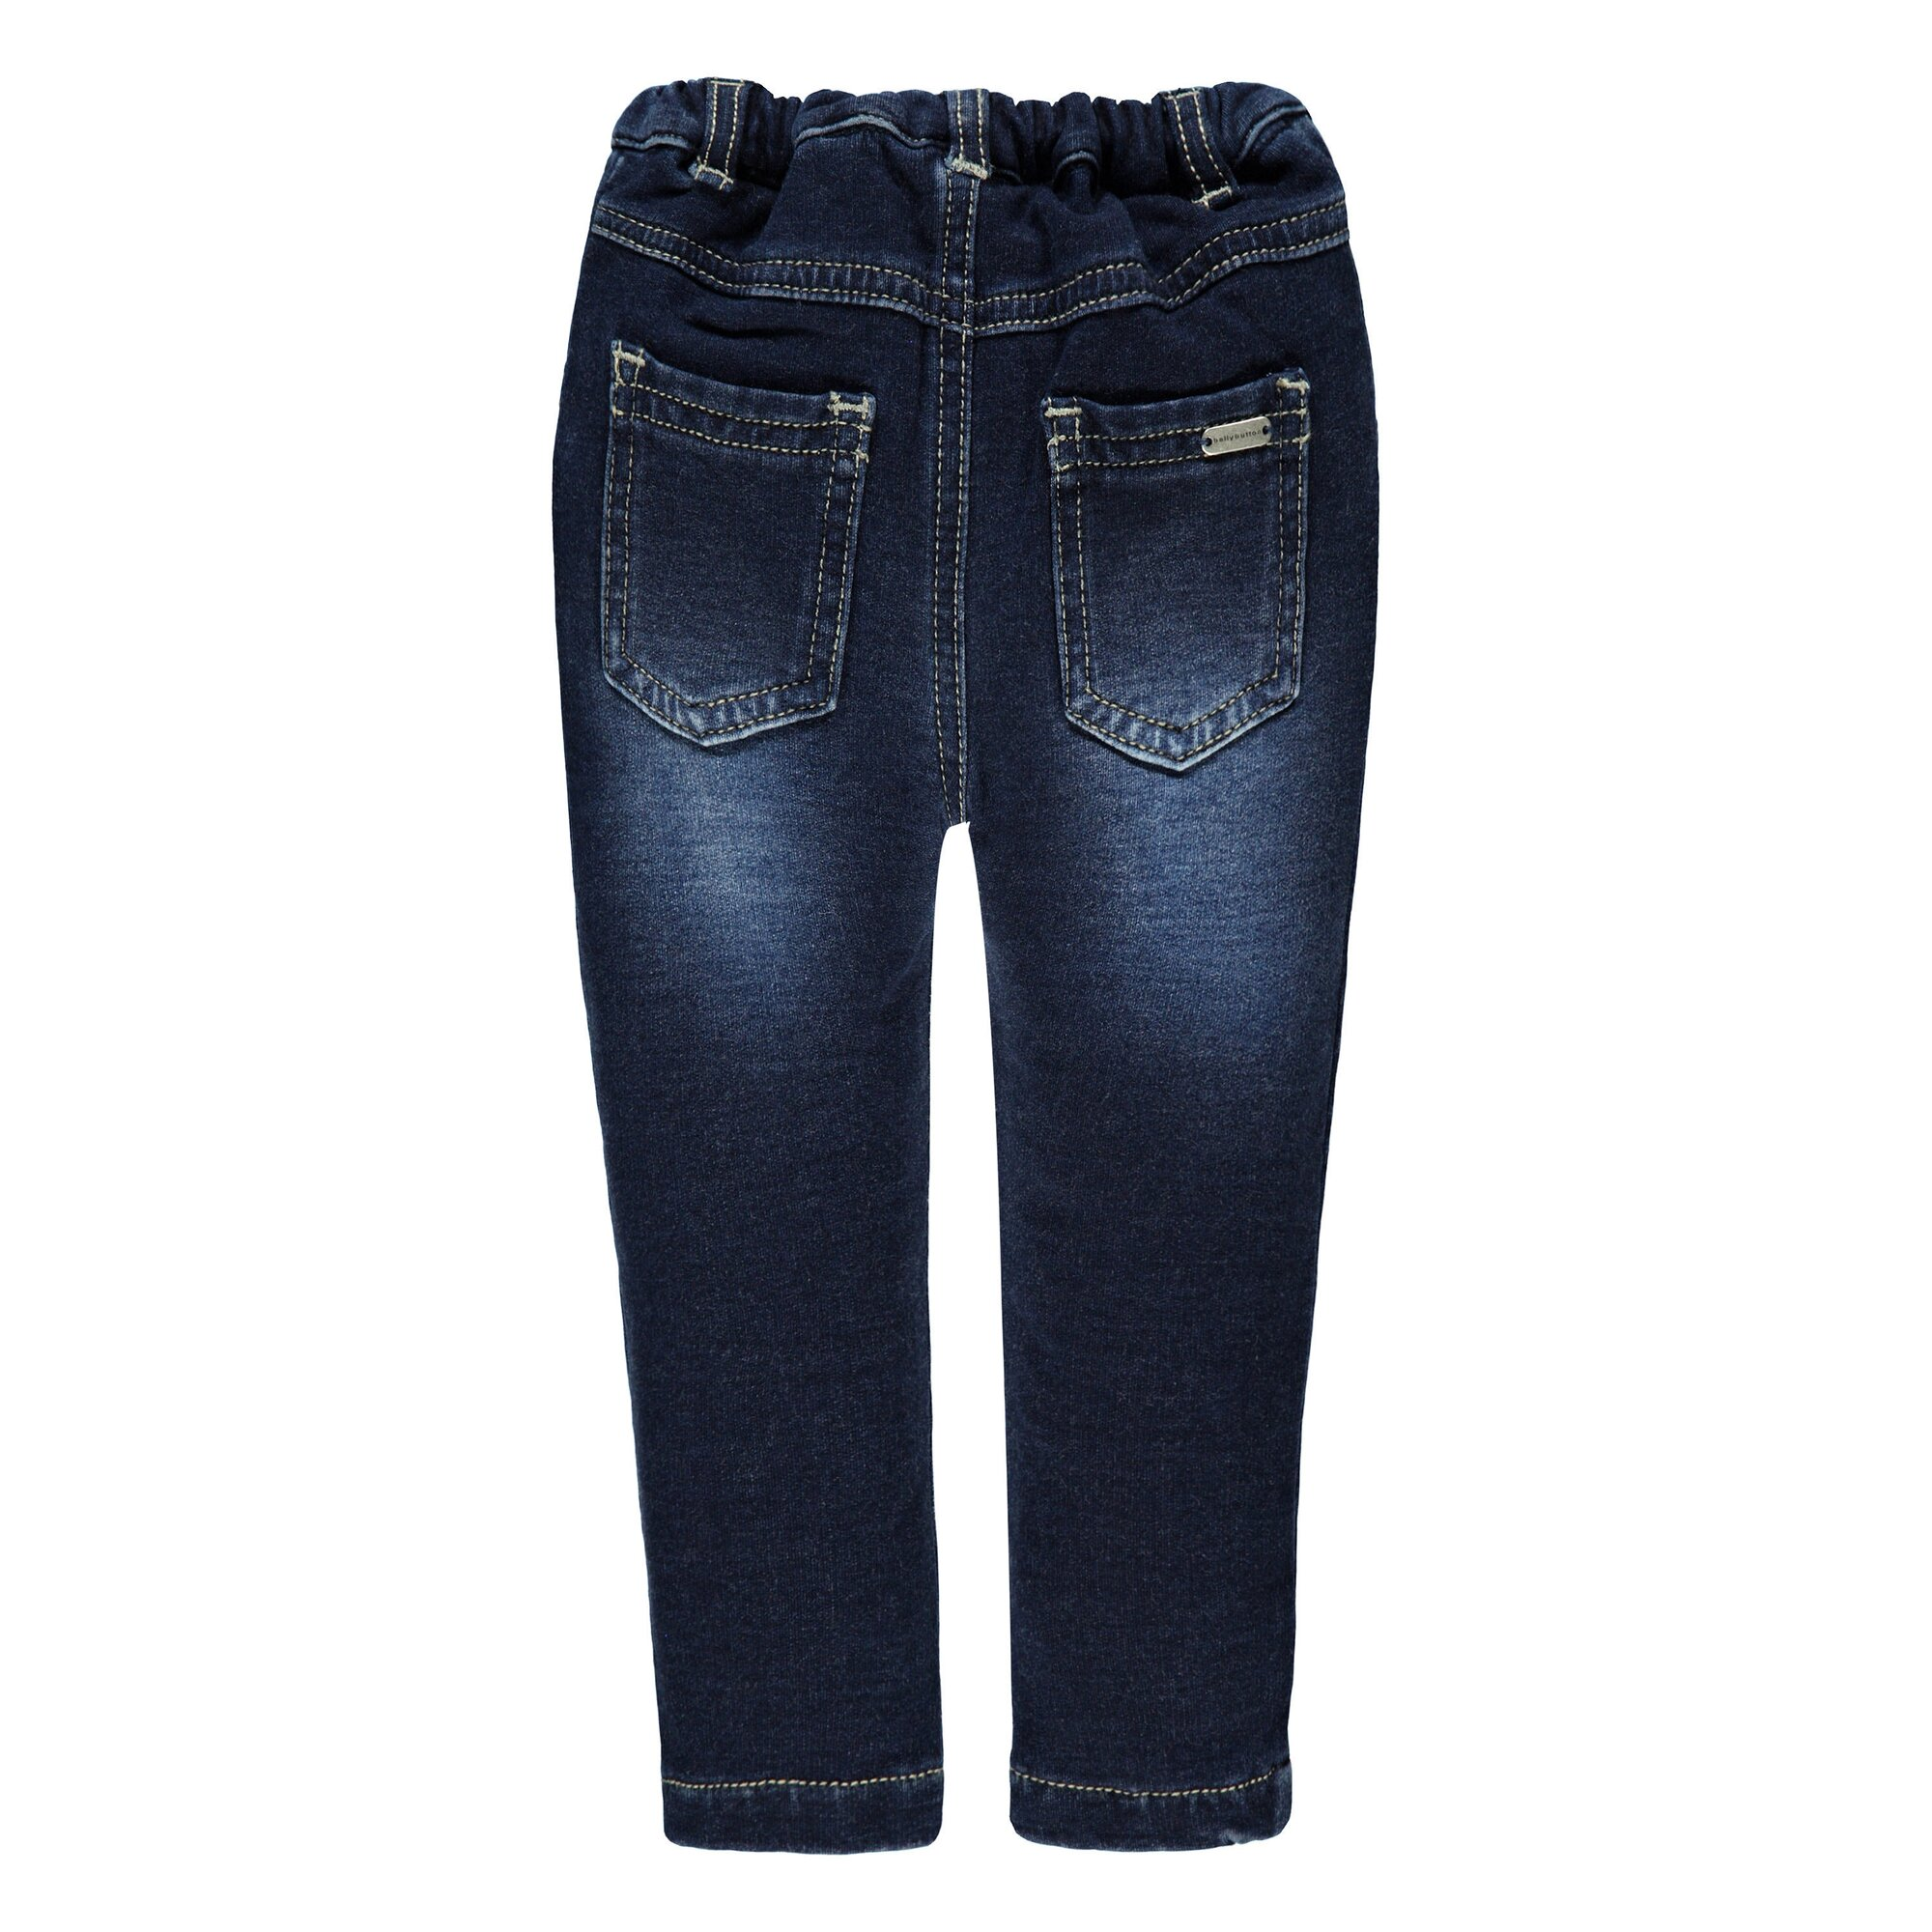 bellybutton-jeggings-fur-madchen-cooler-style